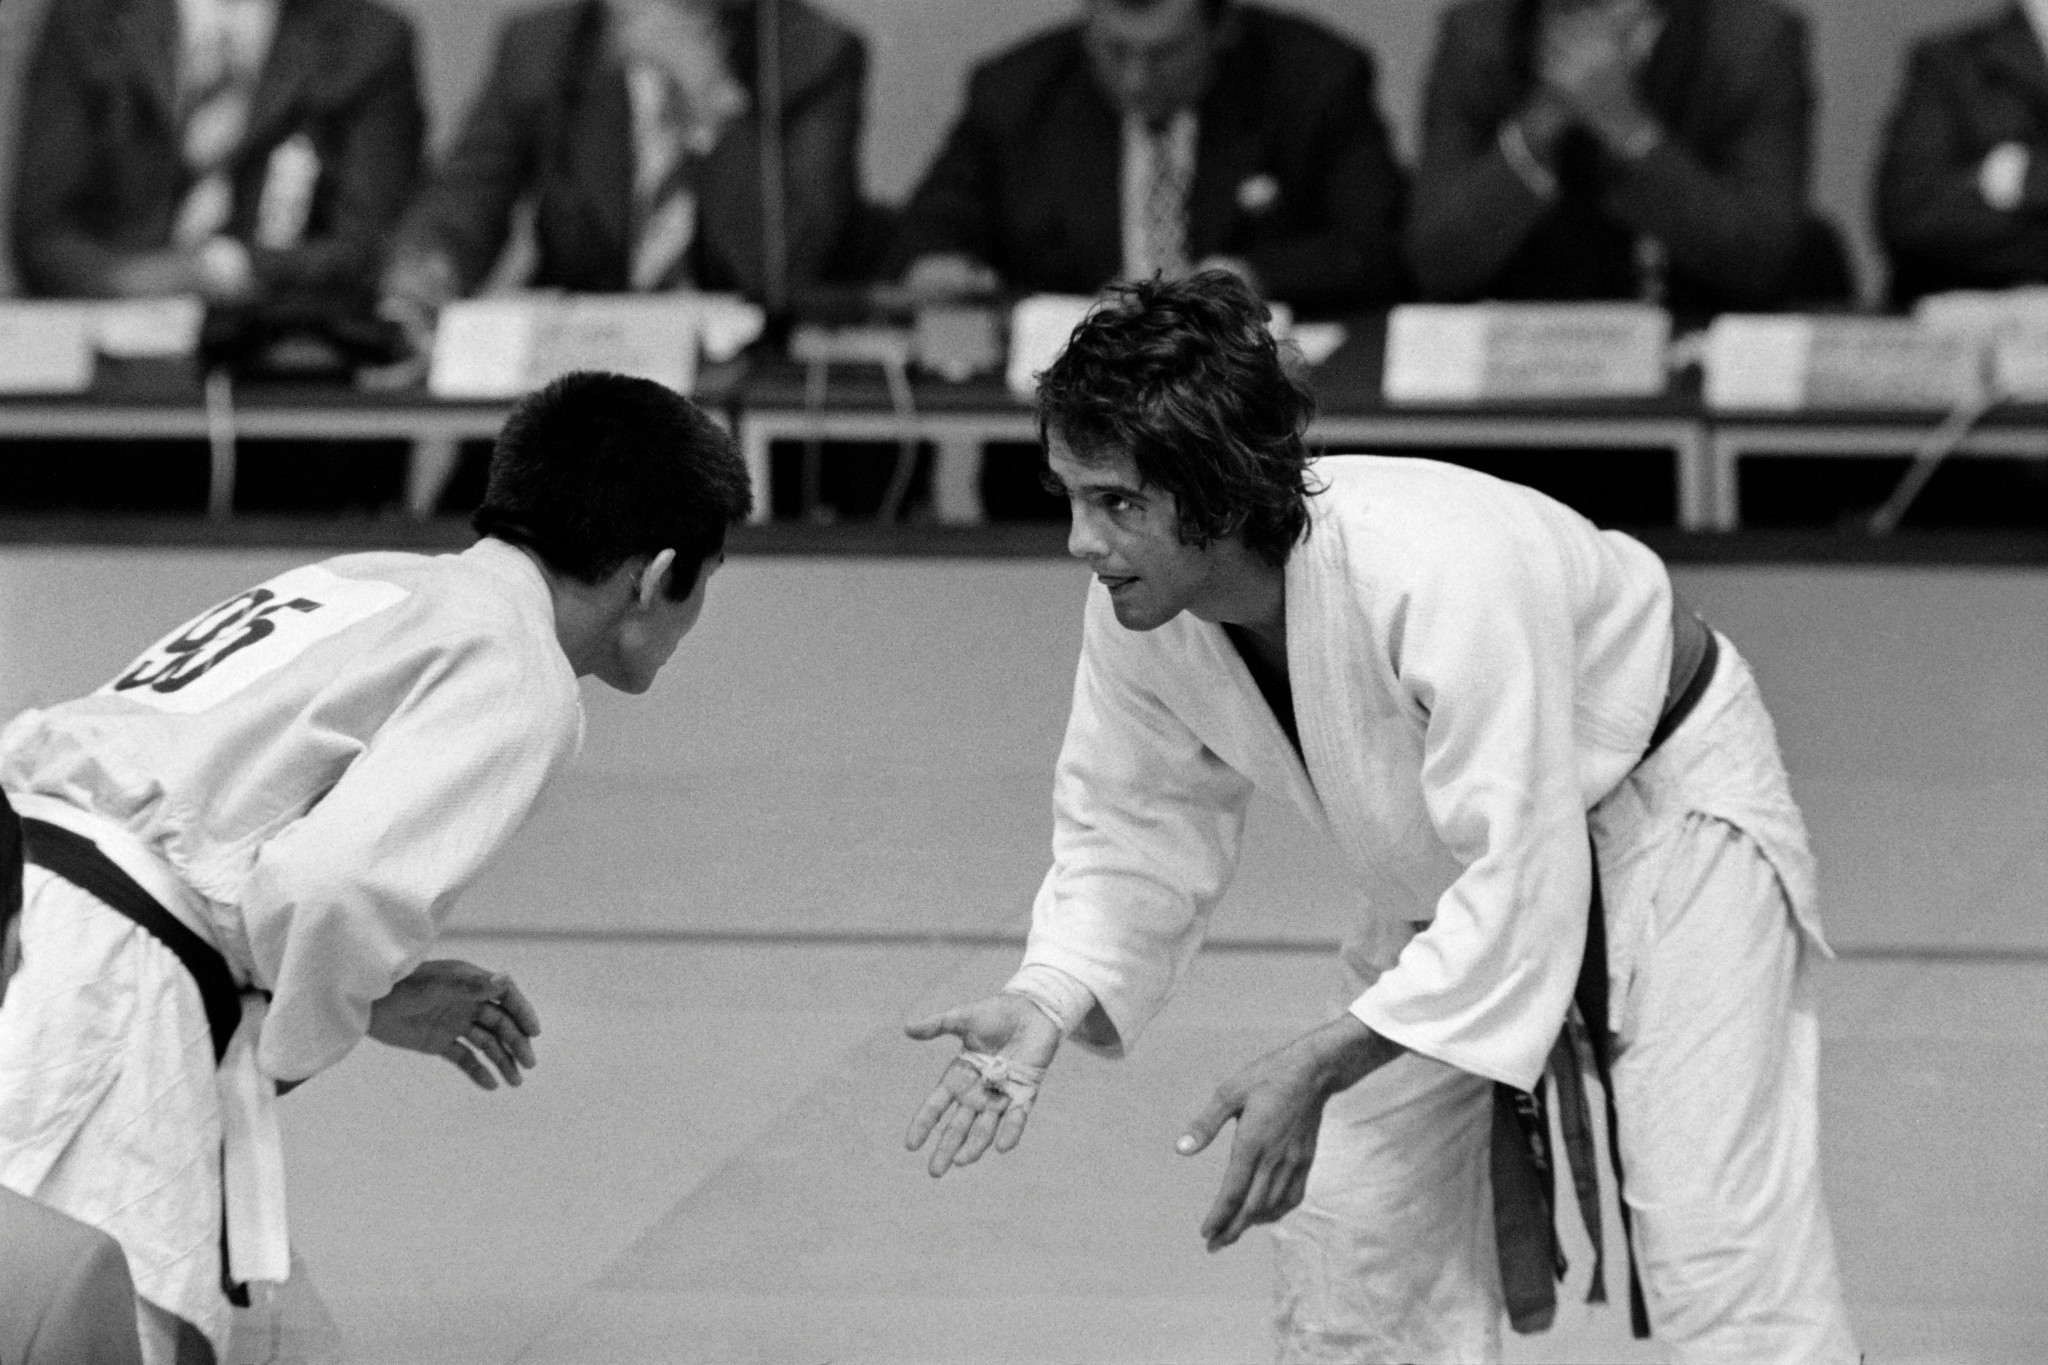 French Lightweight judoka Jean-Jacques Mounier (R) fights against Mongolian Bakhava Buida on September 2, 1972 during the 1972 Summer Olympics in Munich ©Getty Images